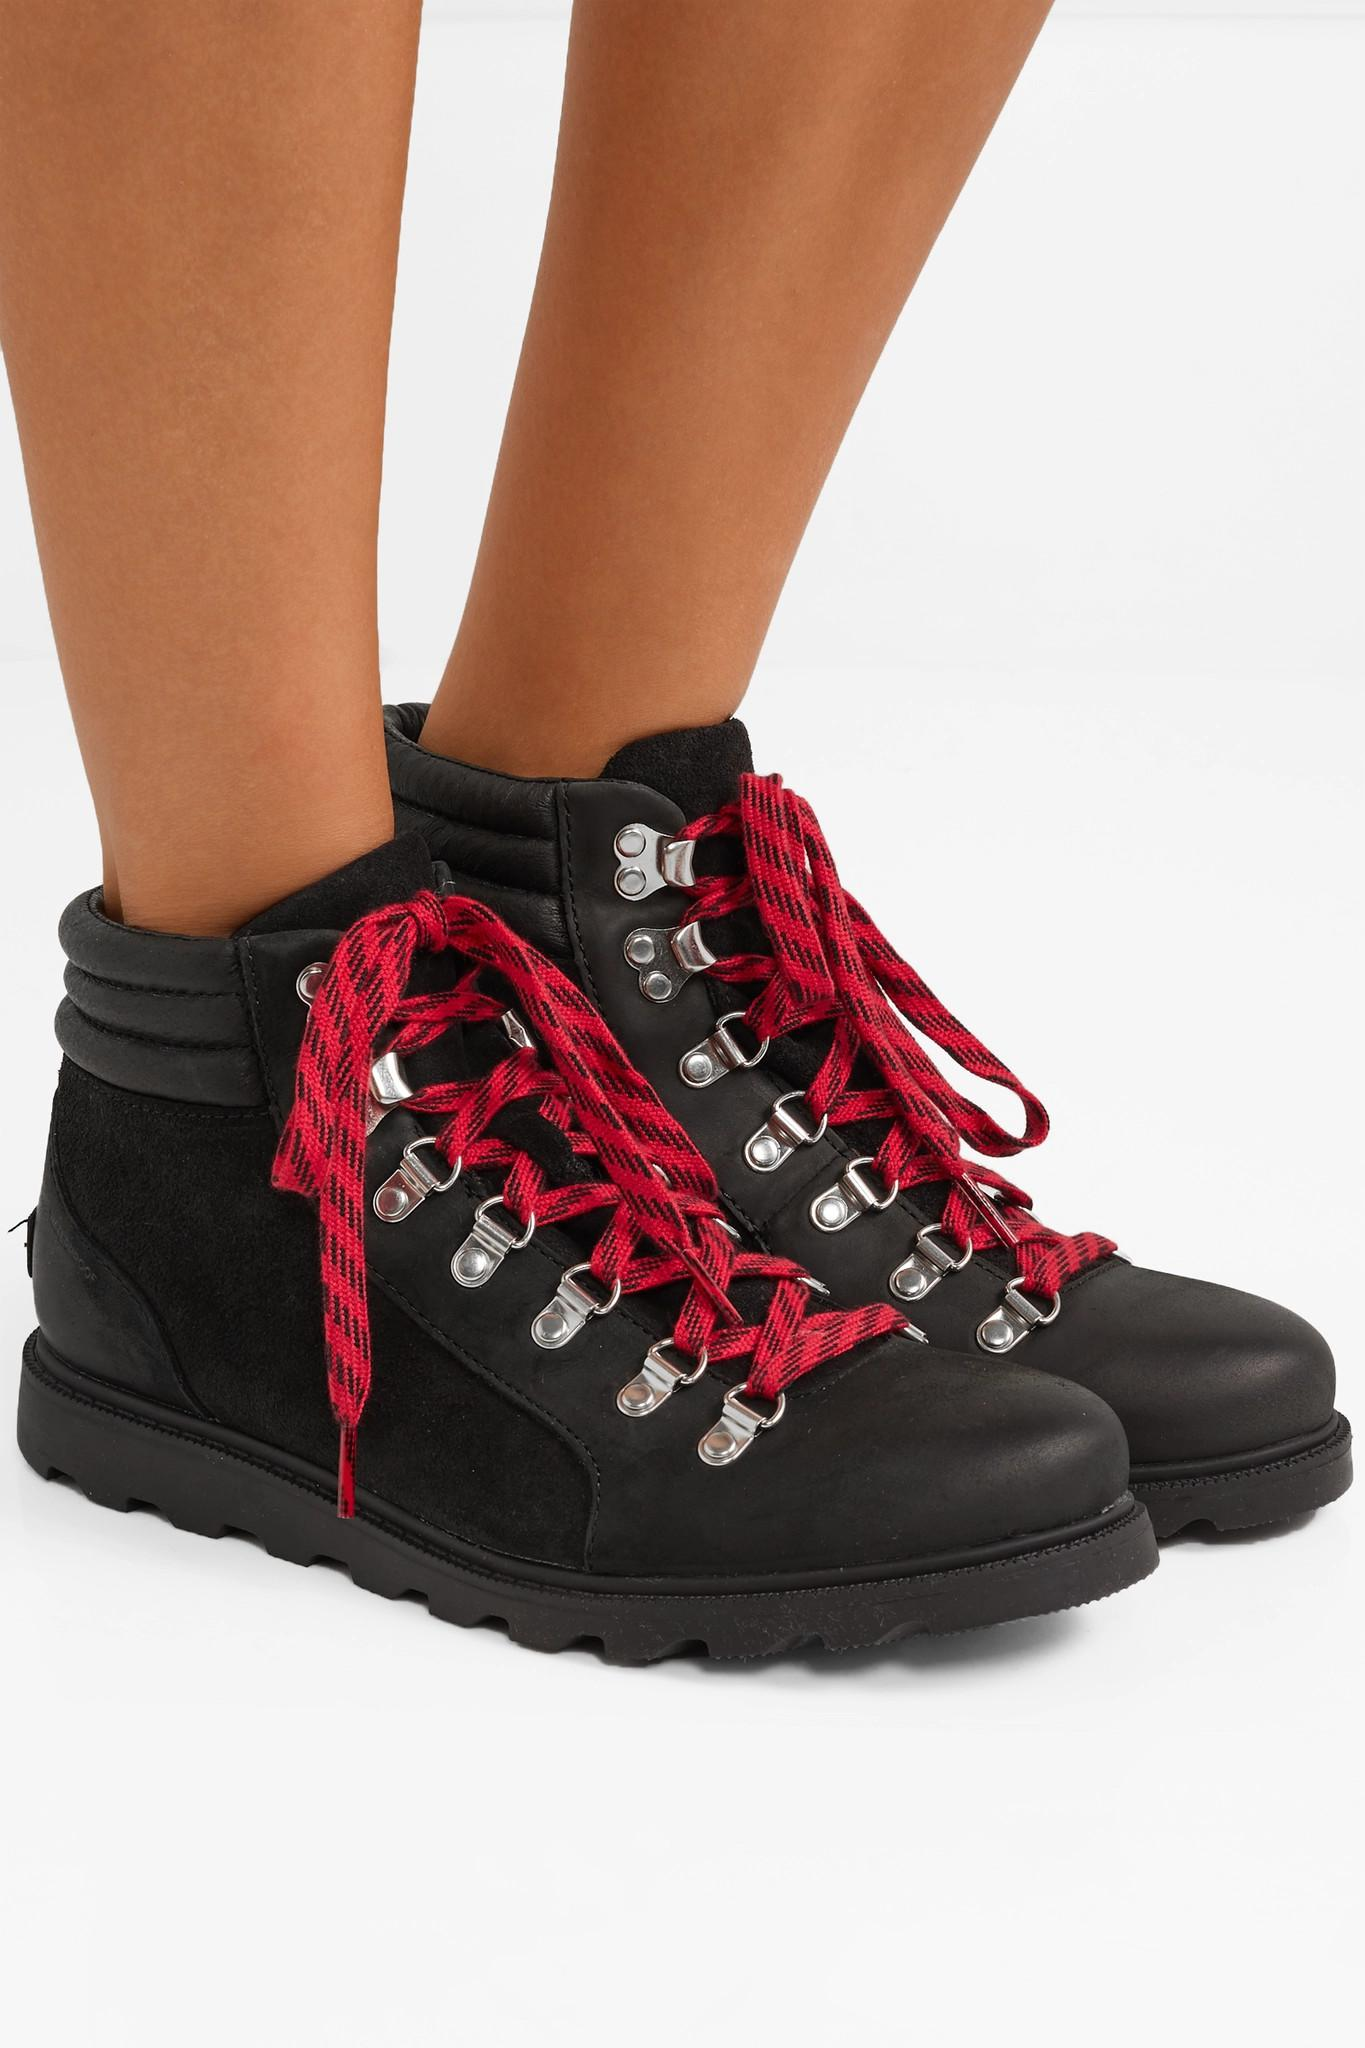 478963e97c12 Sorel - Black Ainsleytm Conquest Waterproof Leather And Suede Boots - Lyst.  View fullscreen